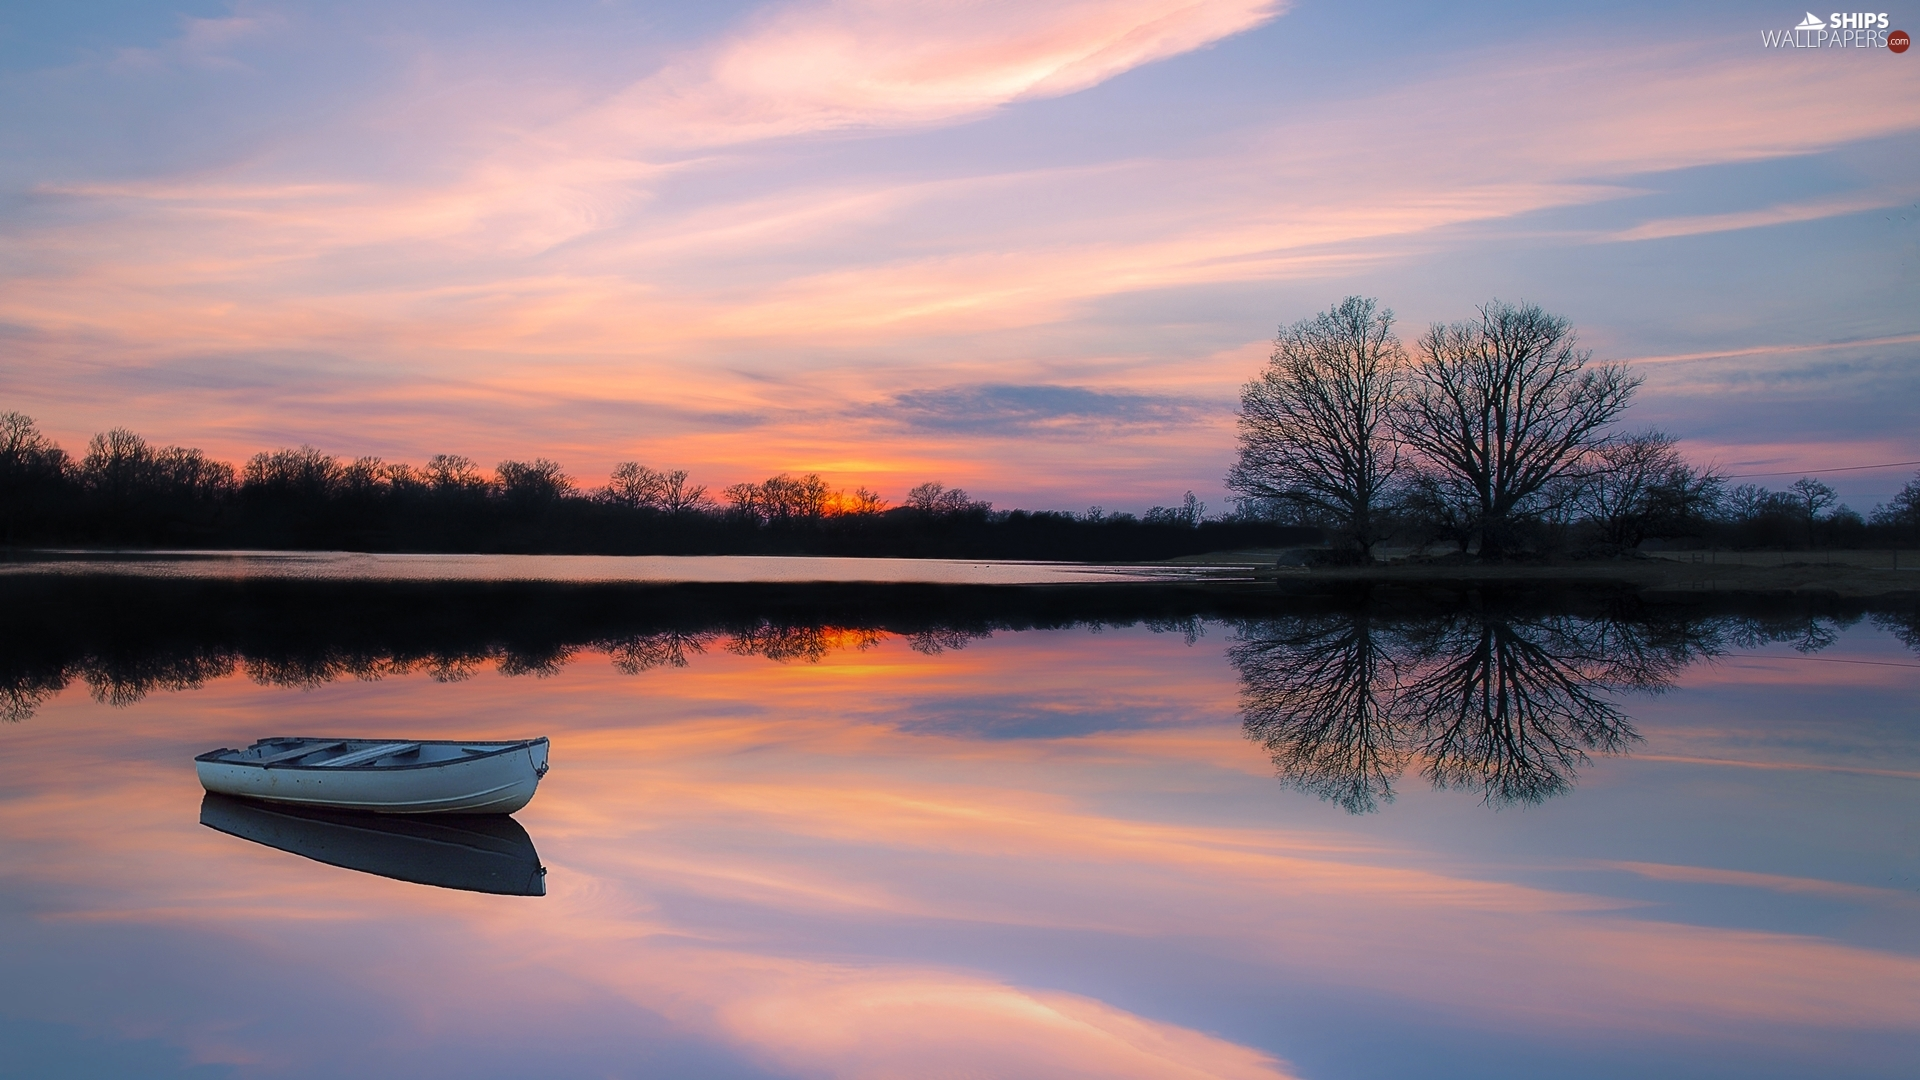 trees, lake, Great Sunsets, reflection, viewes, Boat